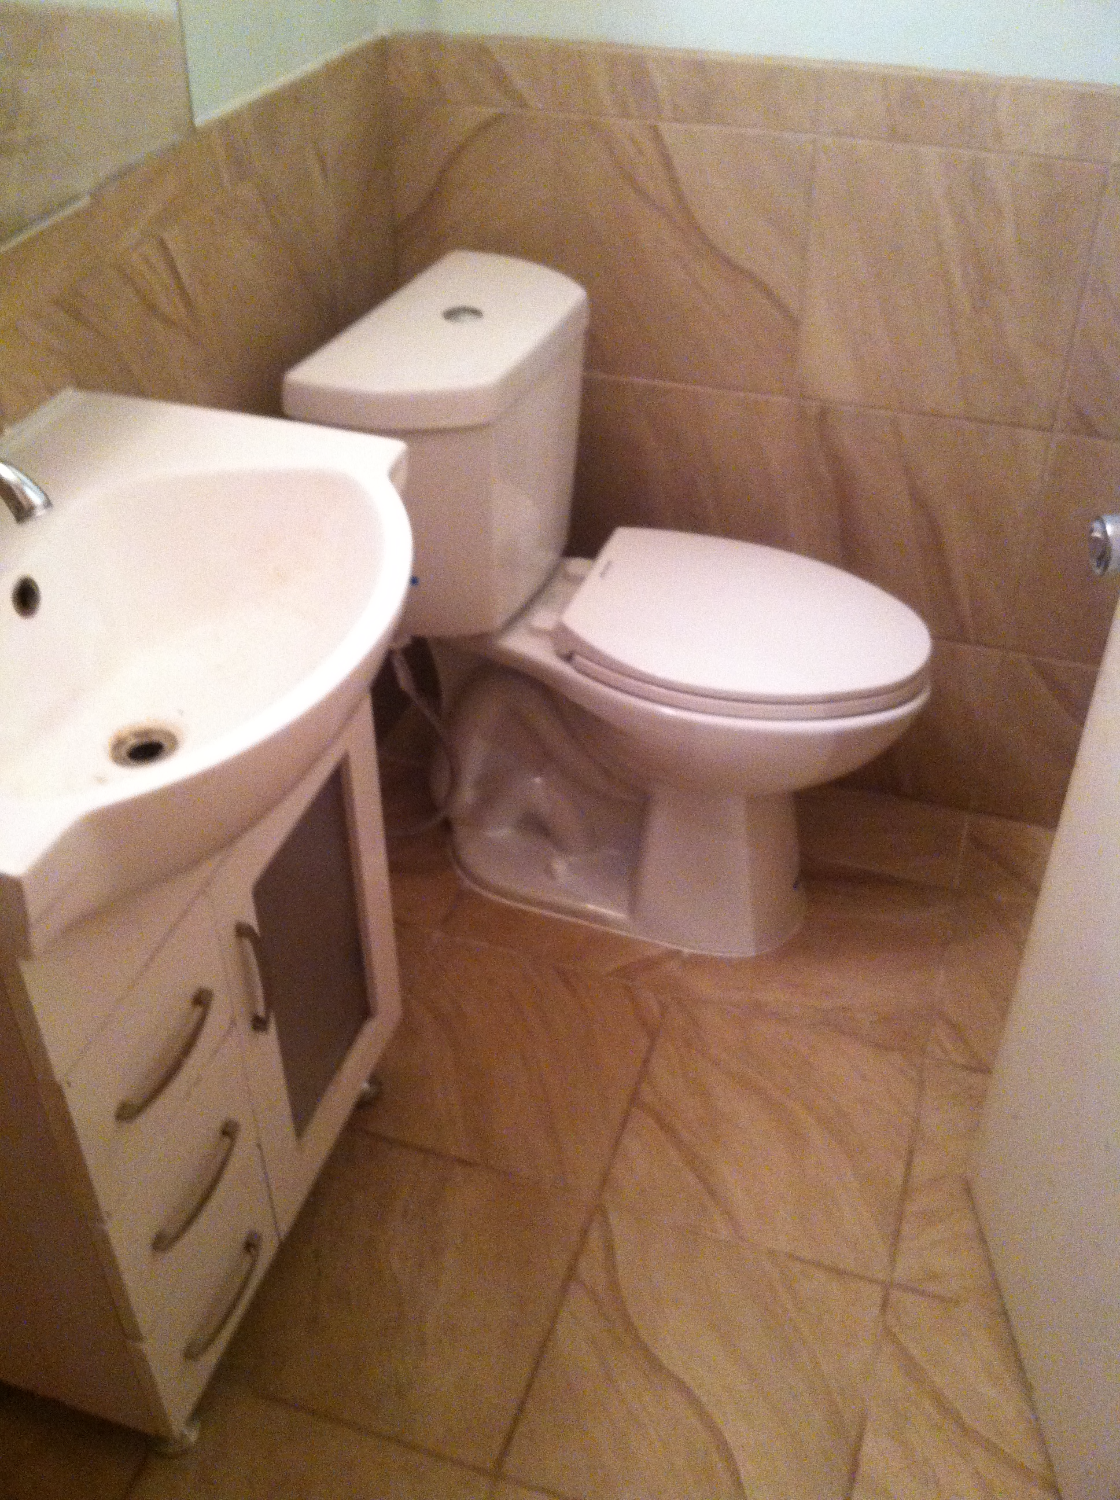 Tile and Toilet Install